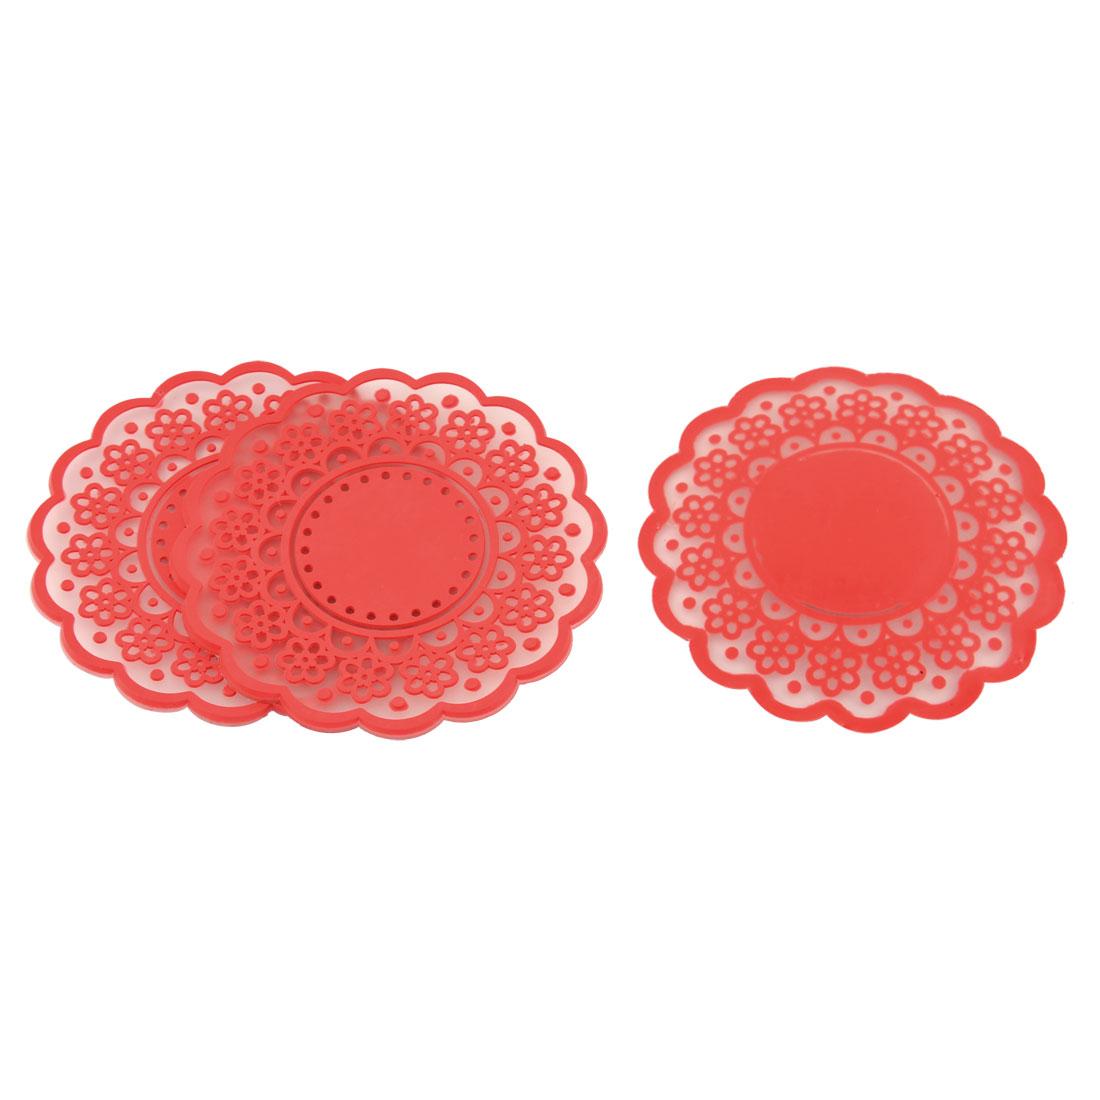 Household Silicone Flower Shaped Teapot Bottle Cup Coasters Mat Red 3 Pcs